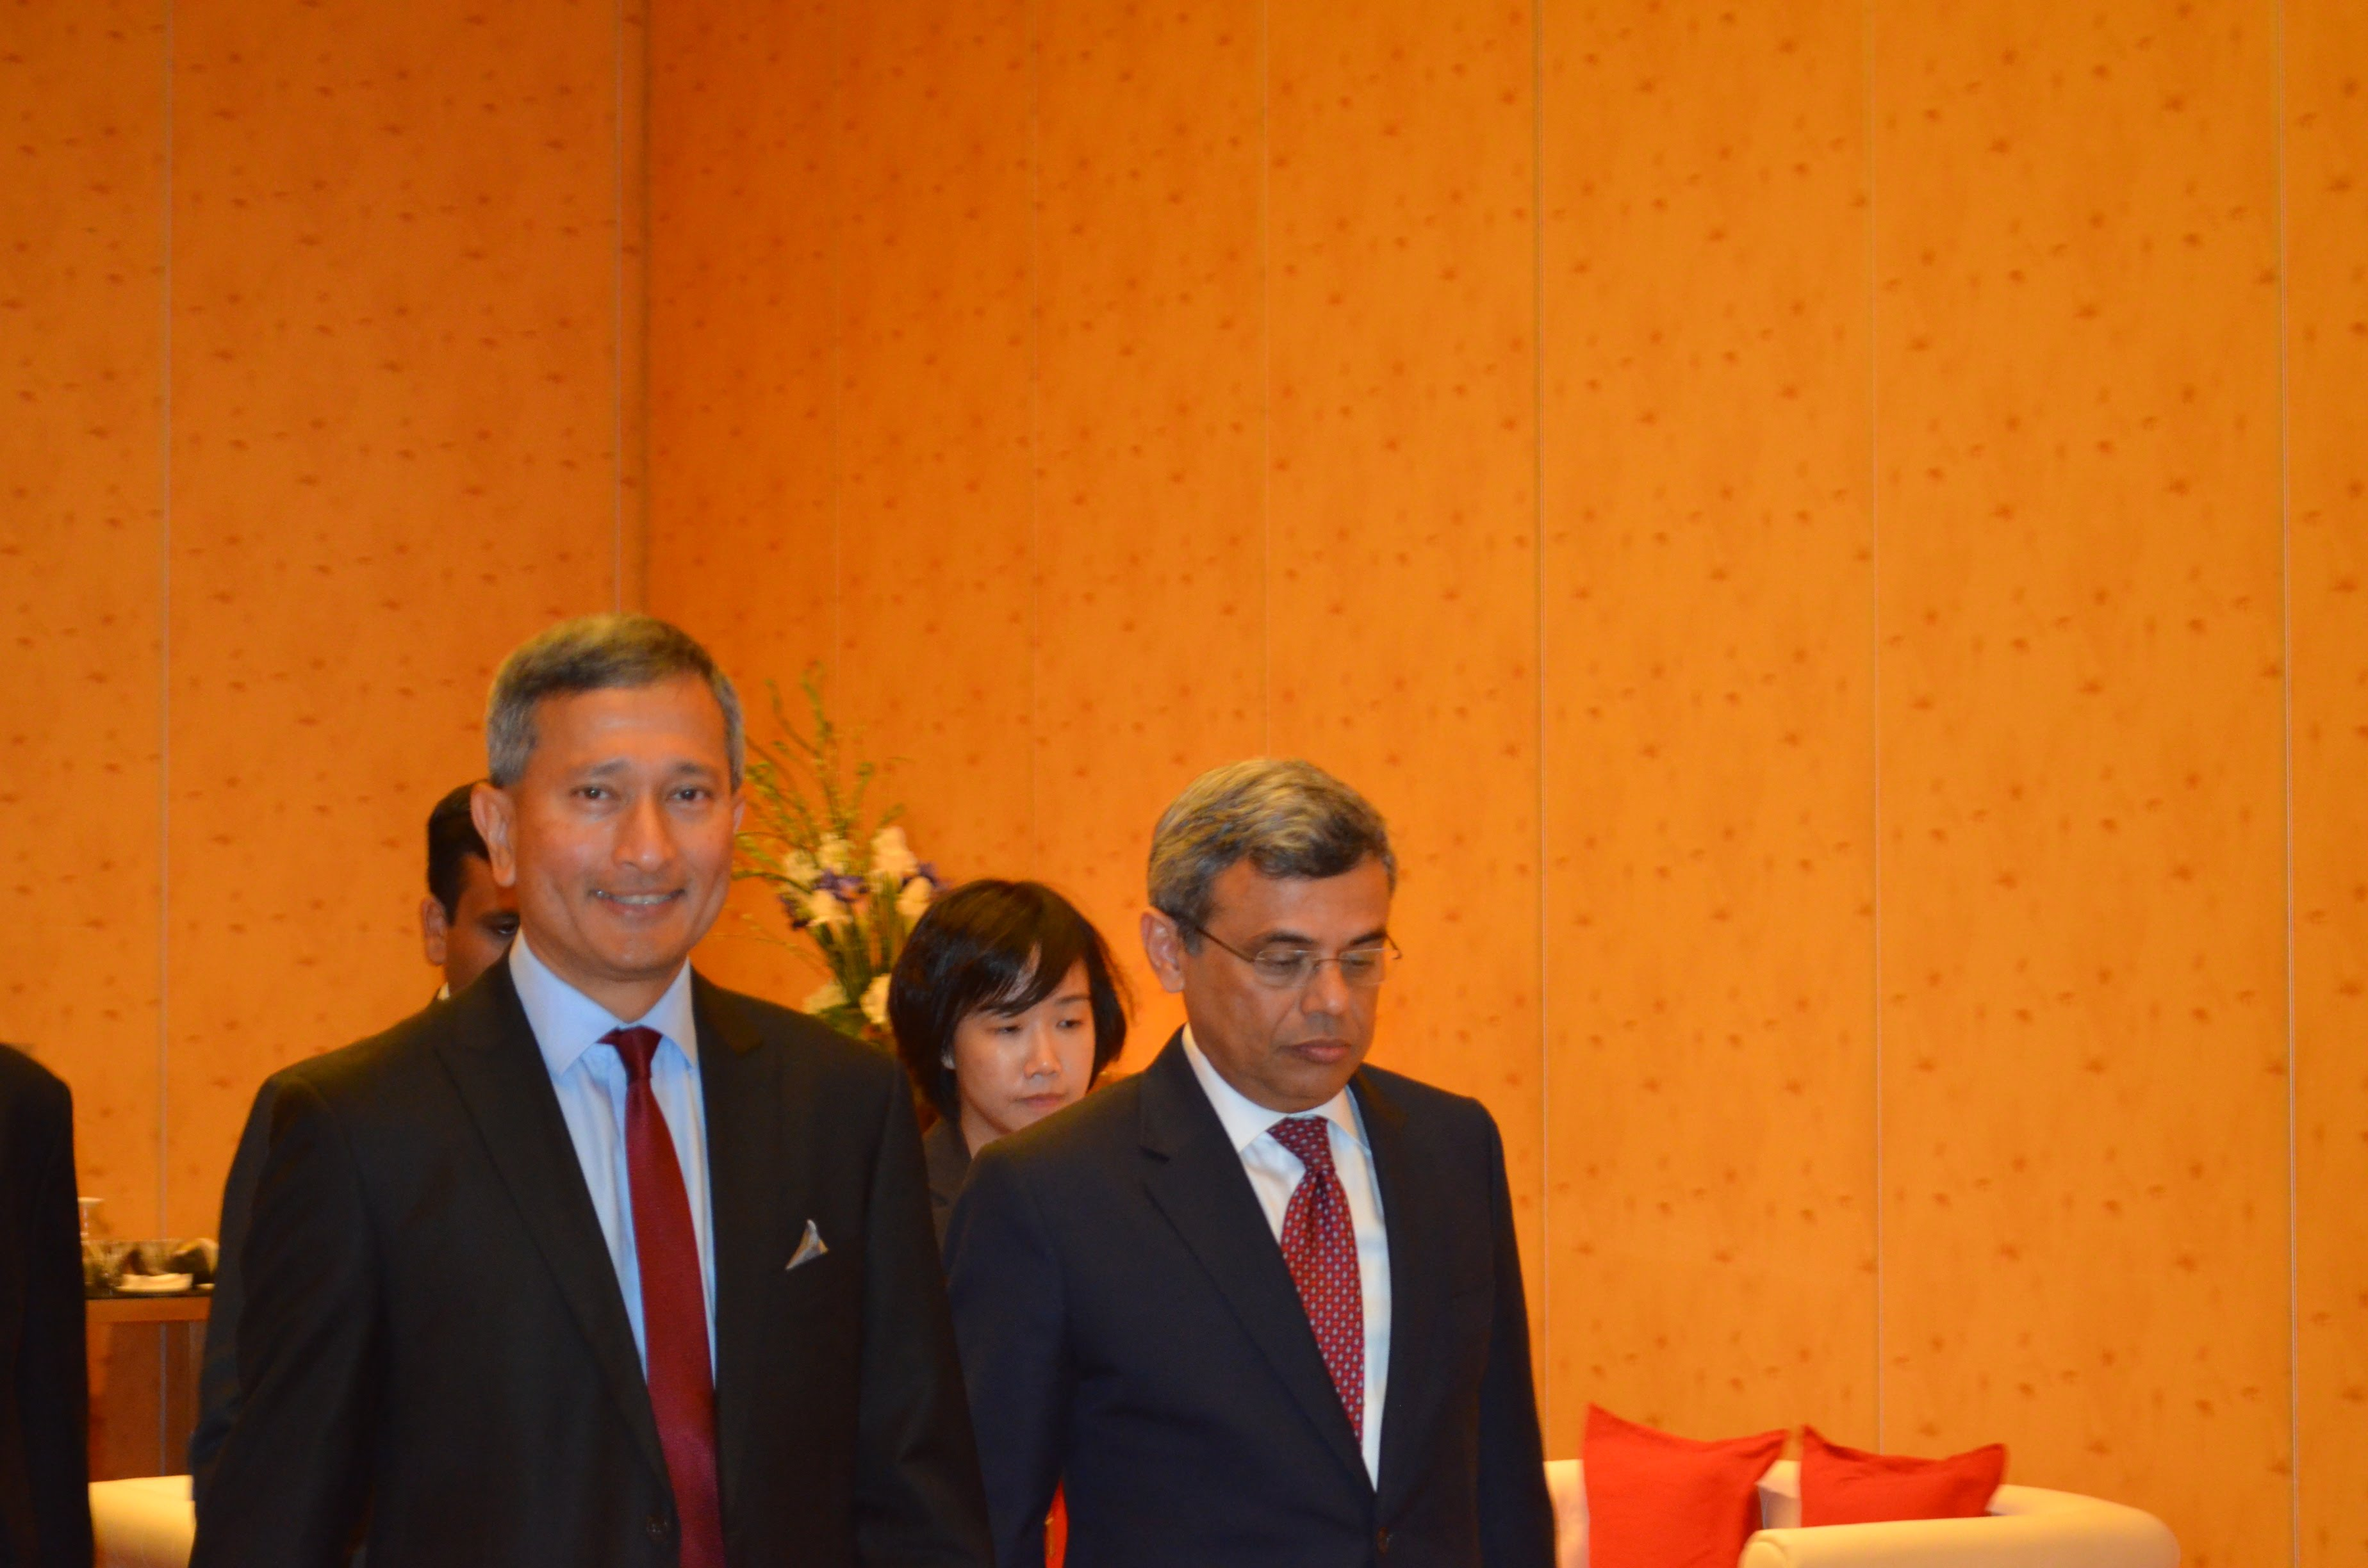 Minister for Foreign Affairs of Singapore Dr Vivian Balakrishnan and High Commissioner of India to Singapore Jawed Ashraf walk together while arriving at the venue.